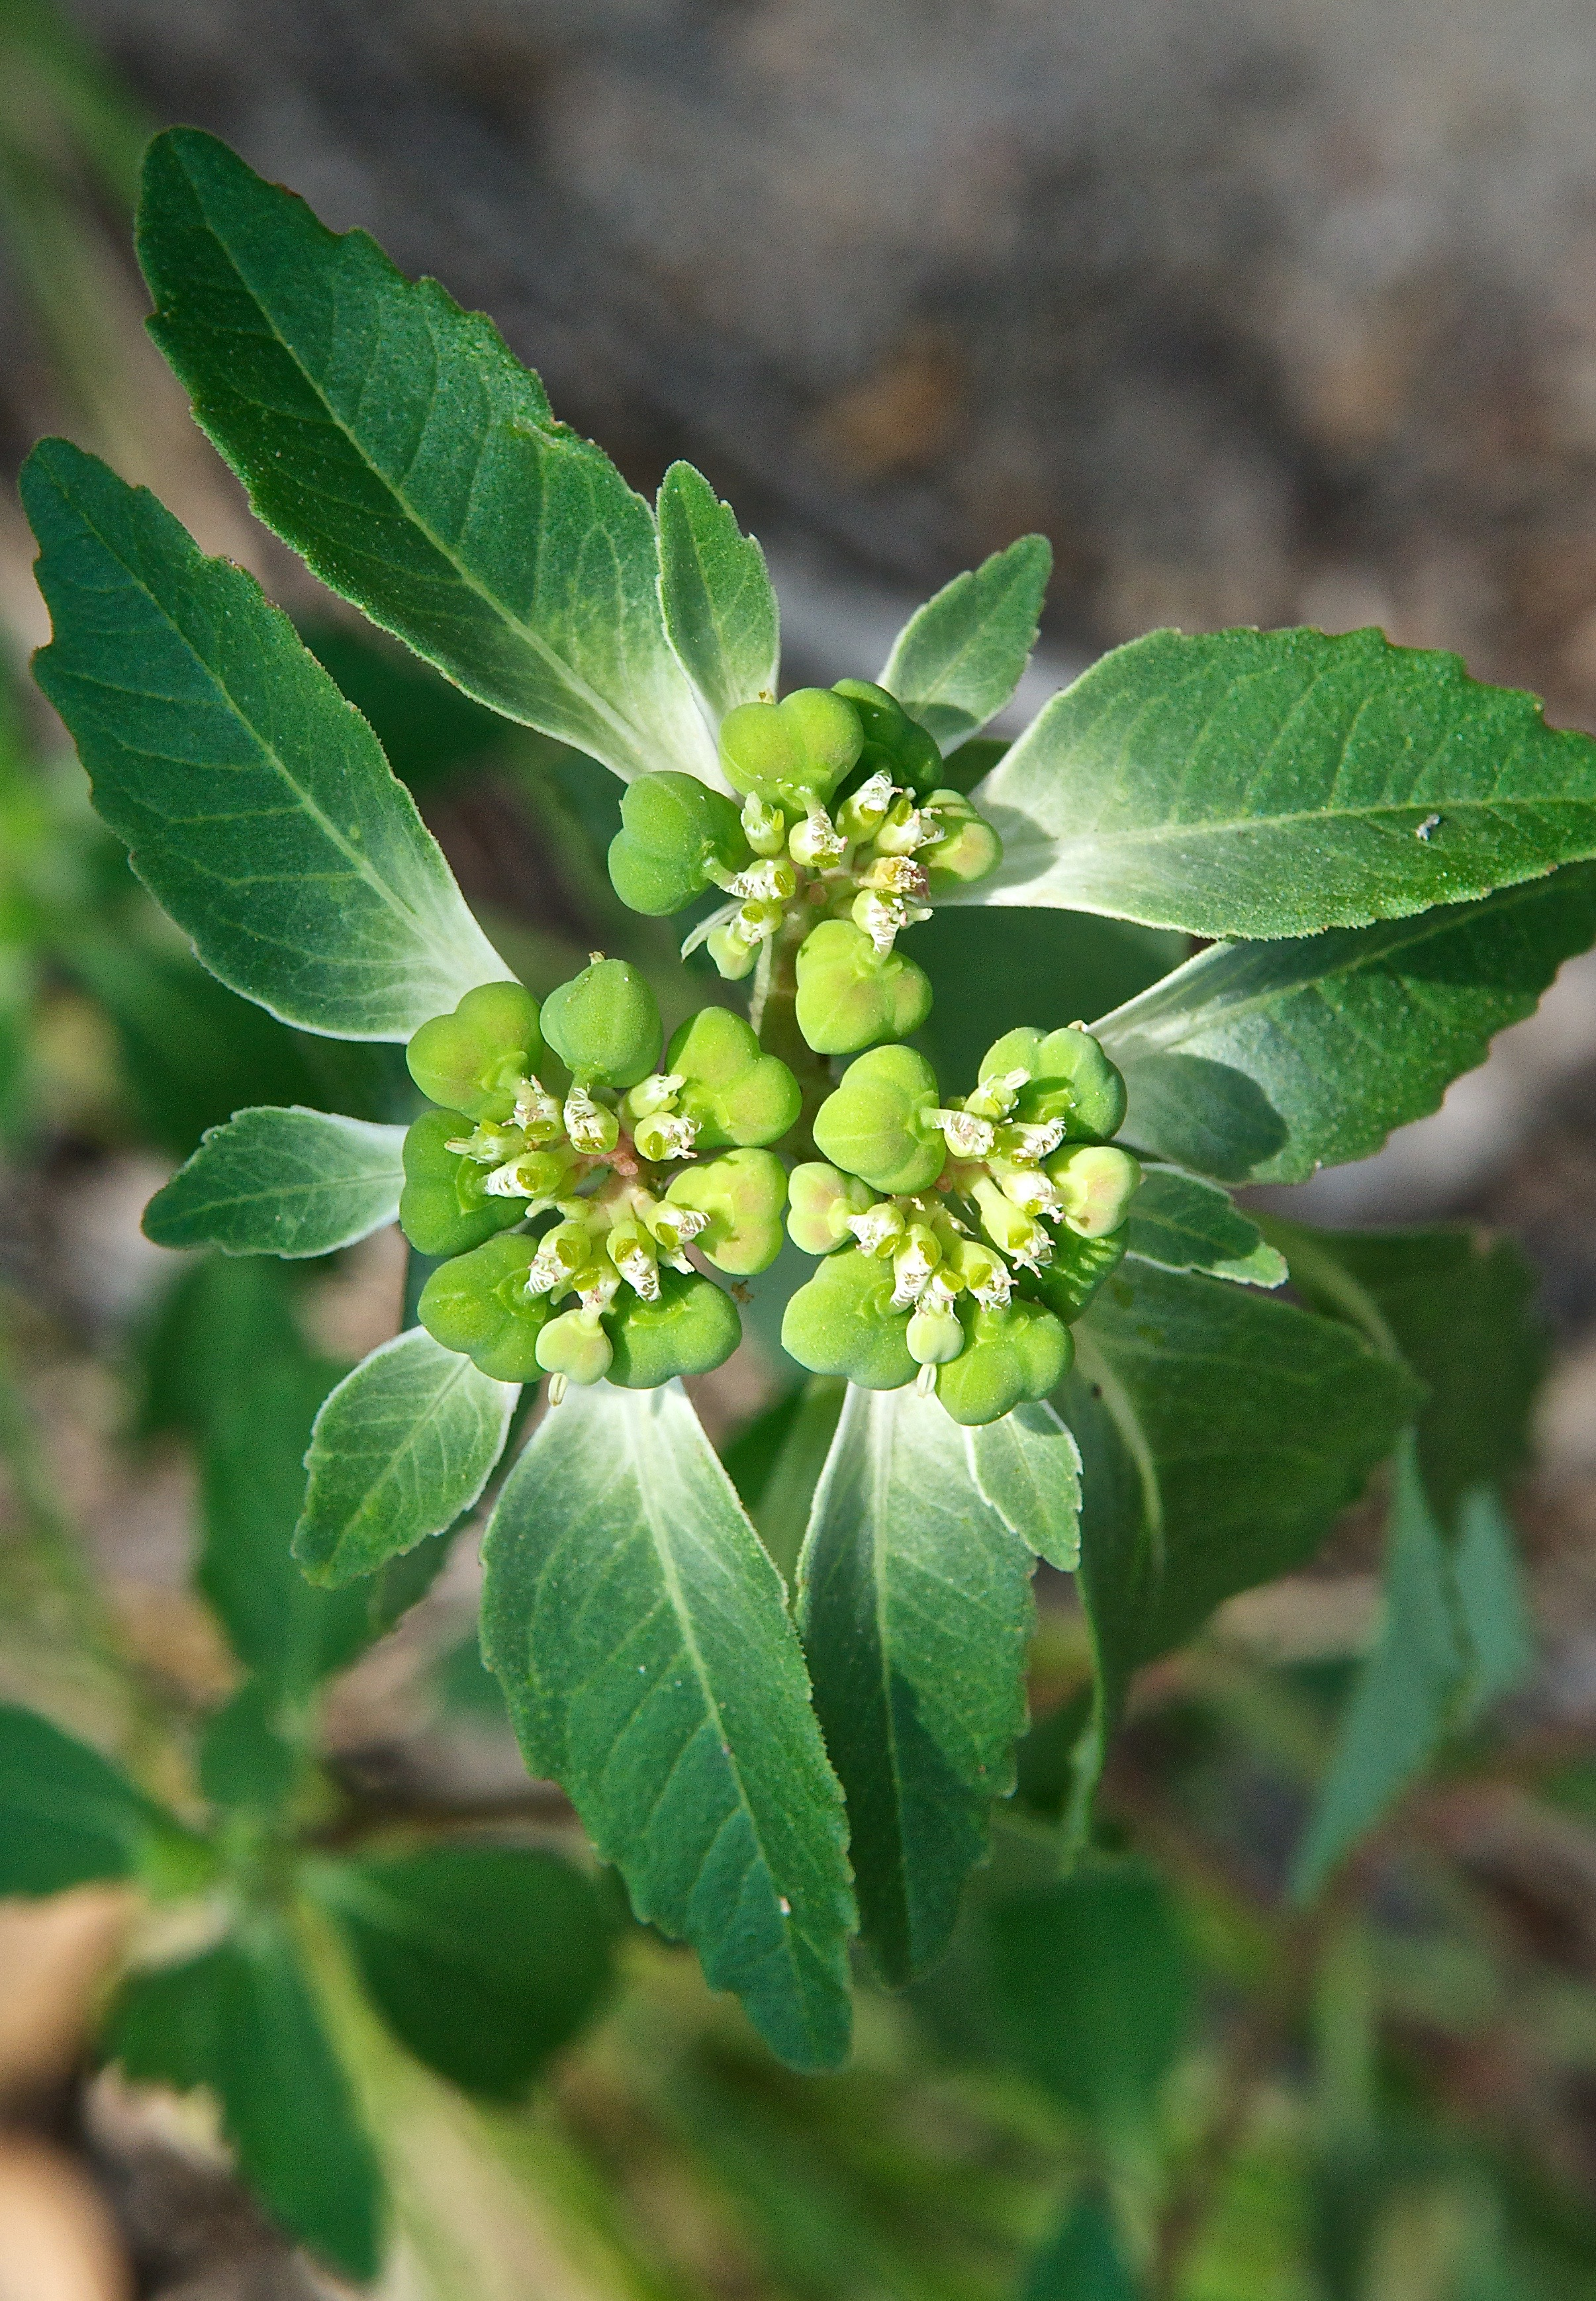 Toothed Spurge (Euphorbia dentata)